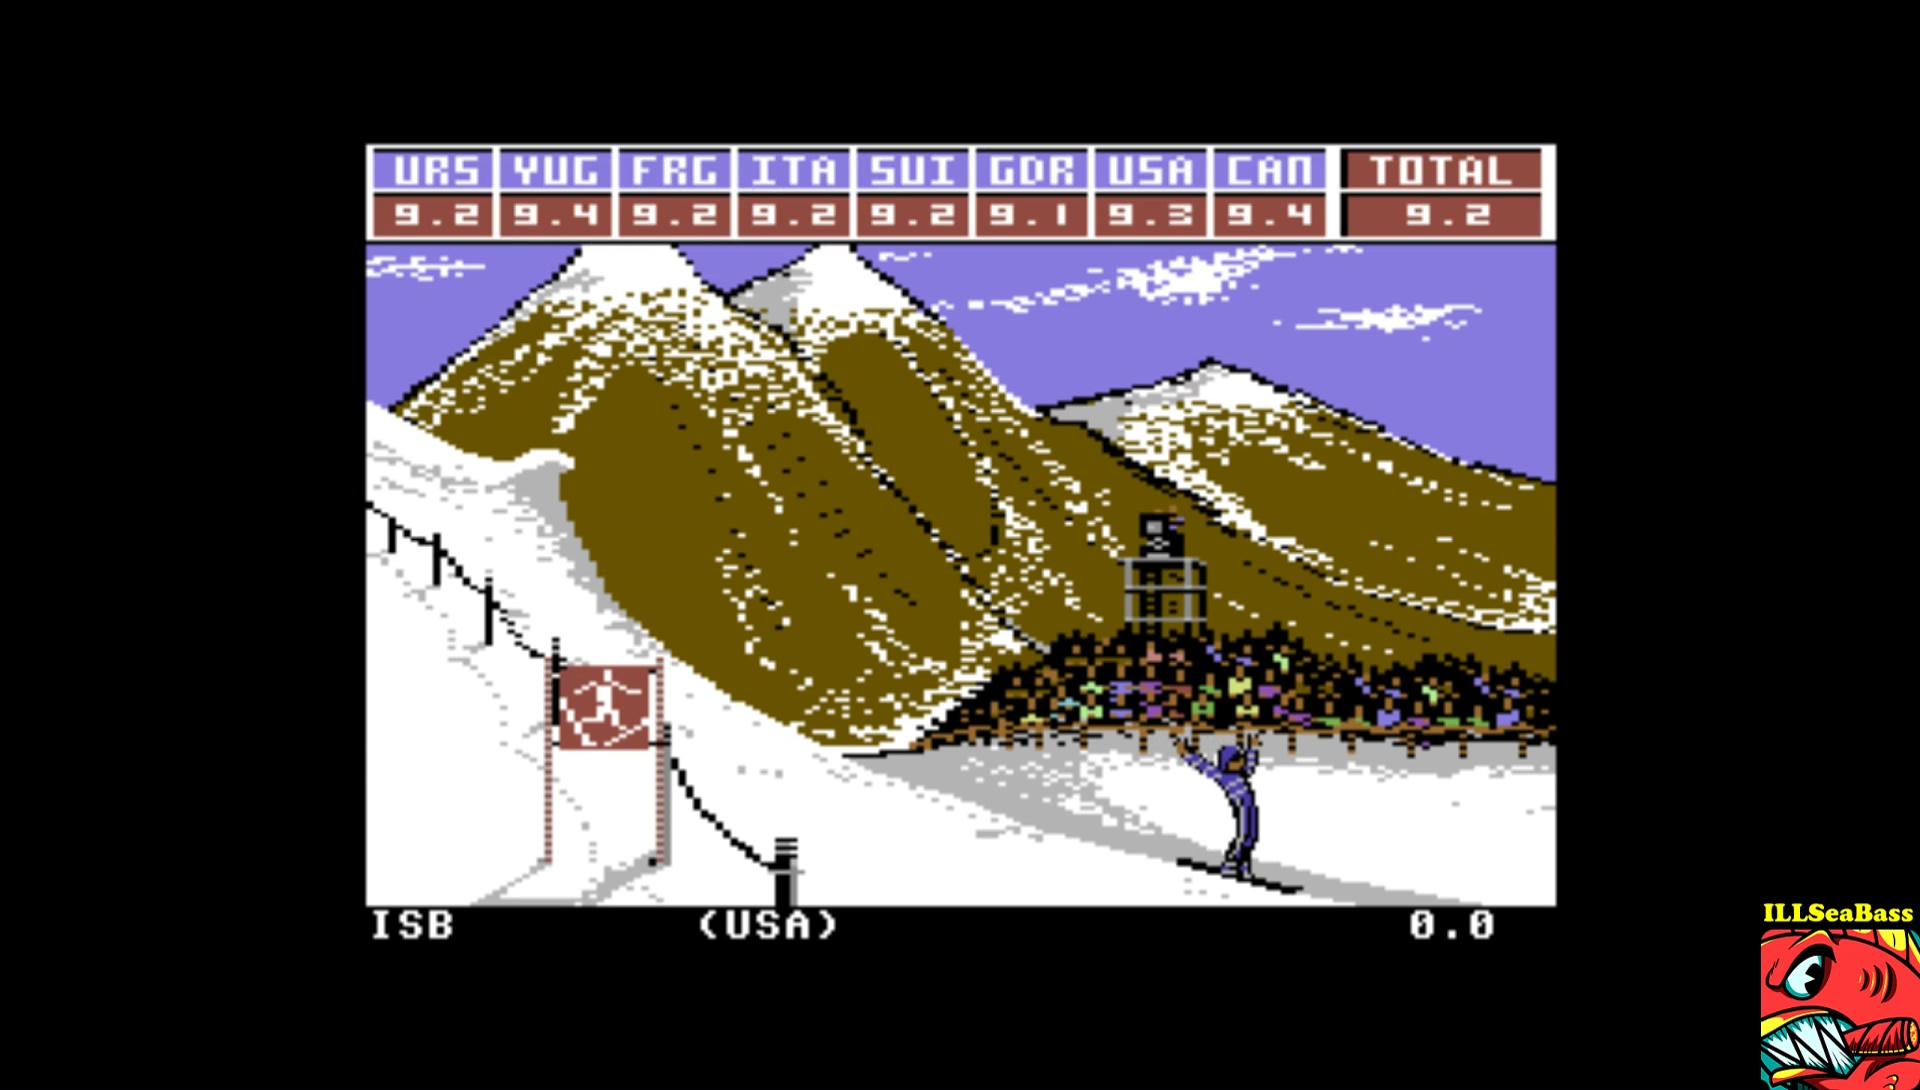 ILLSeaBass: Winter Games: Hot Dog (Commodore 64 Emulated) 92 points on 2017-02-16 19:32:29